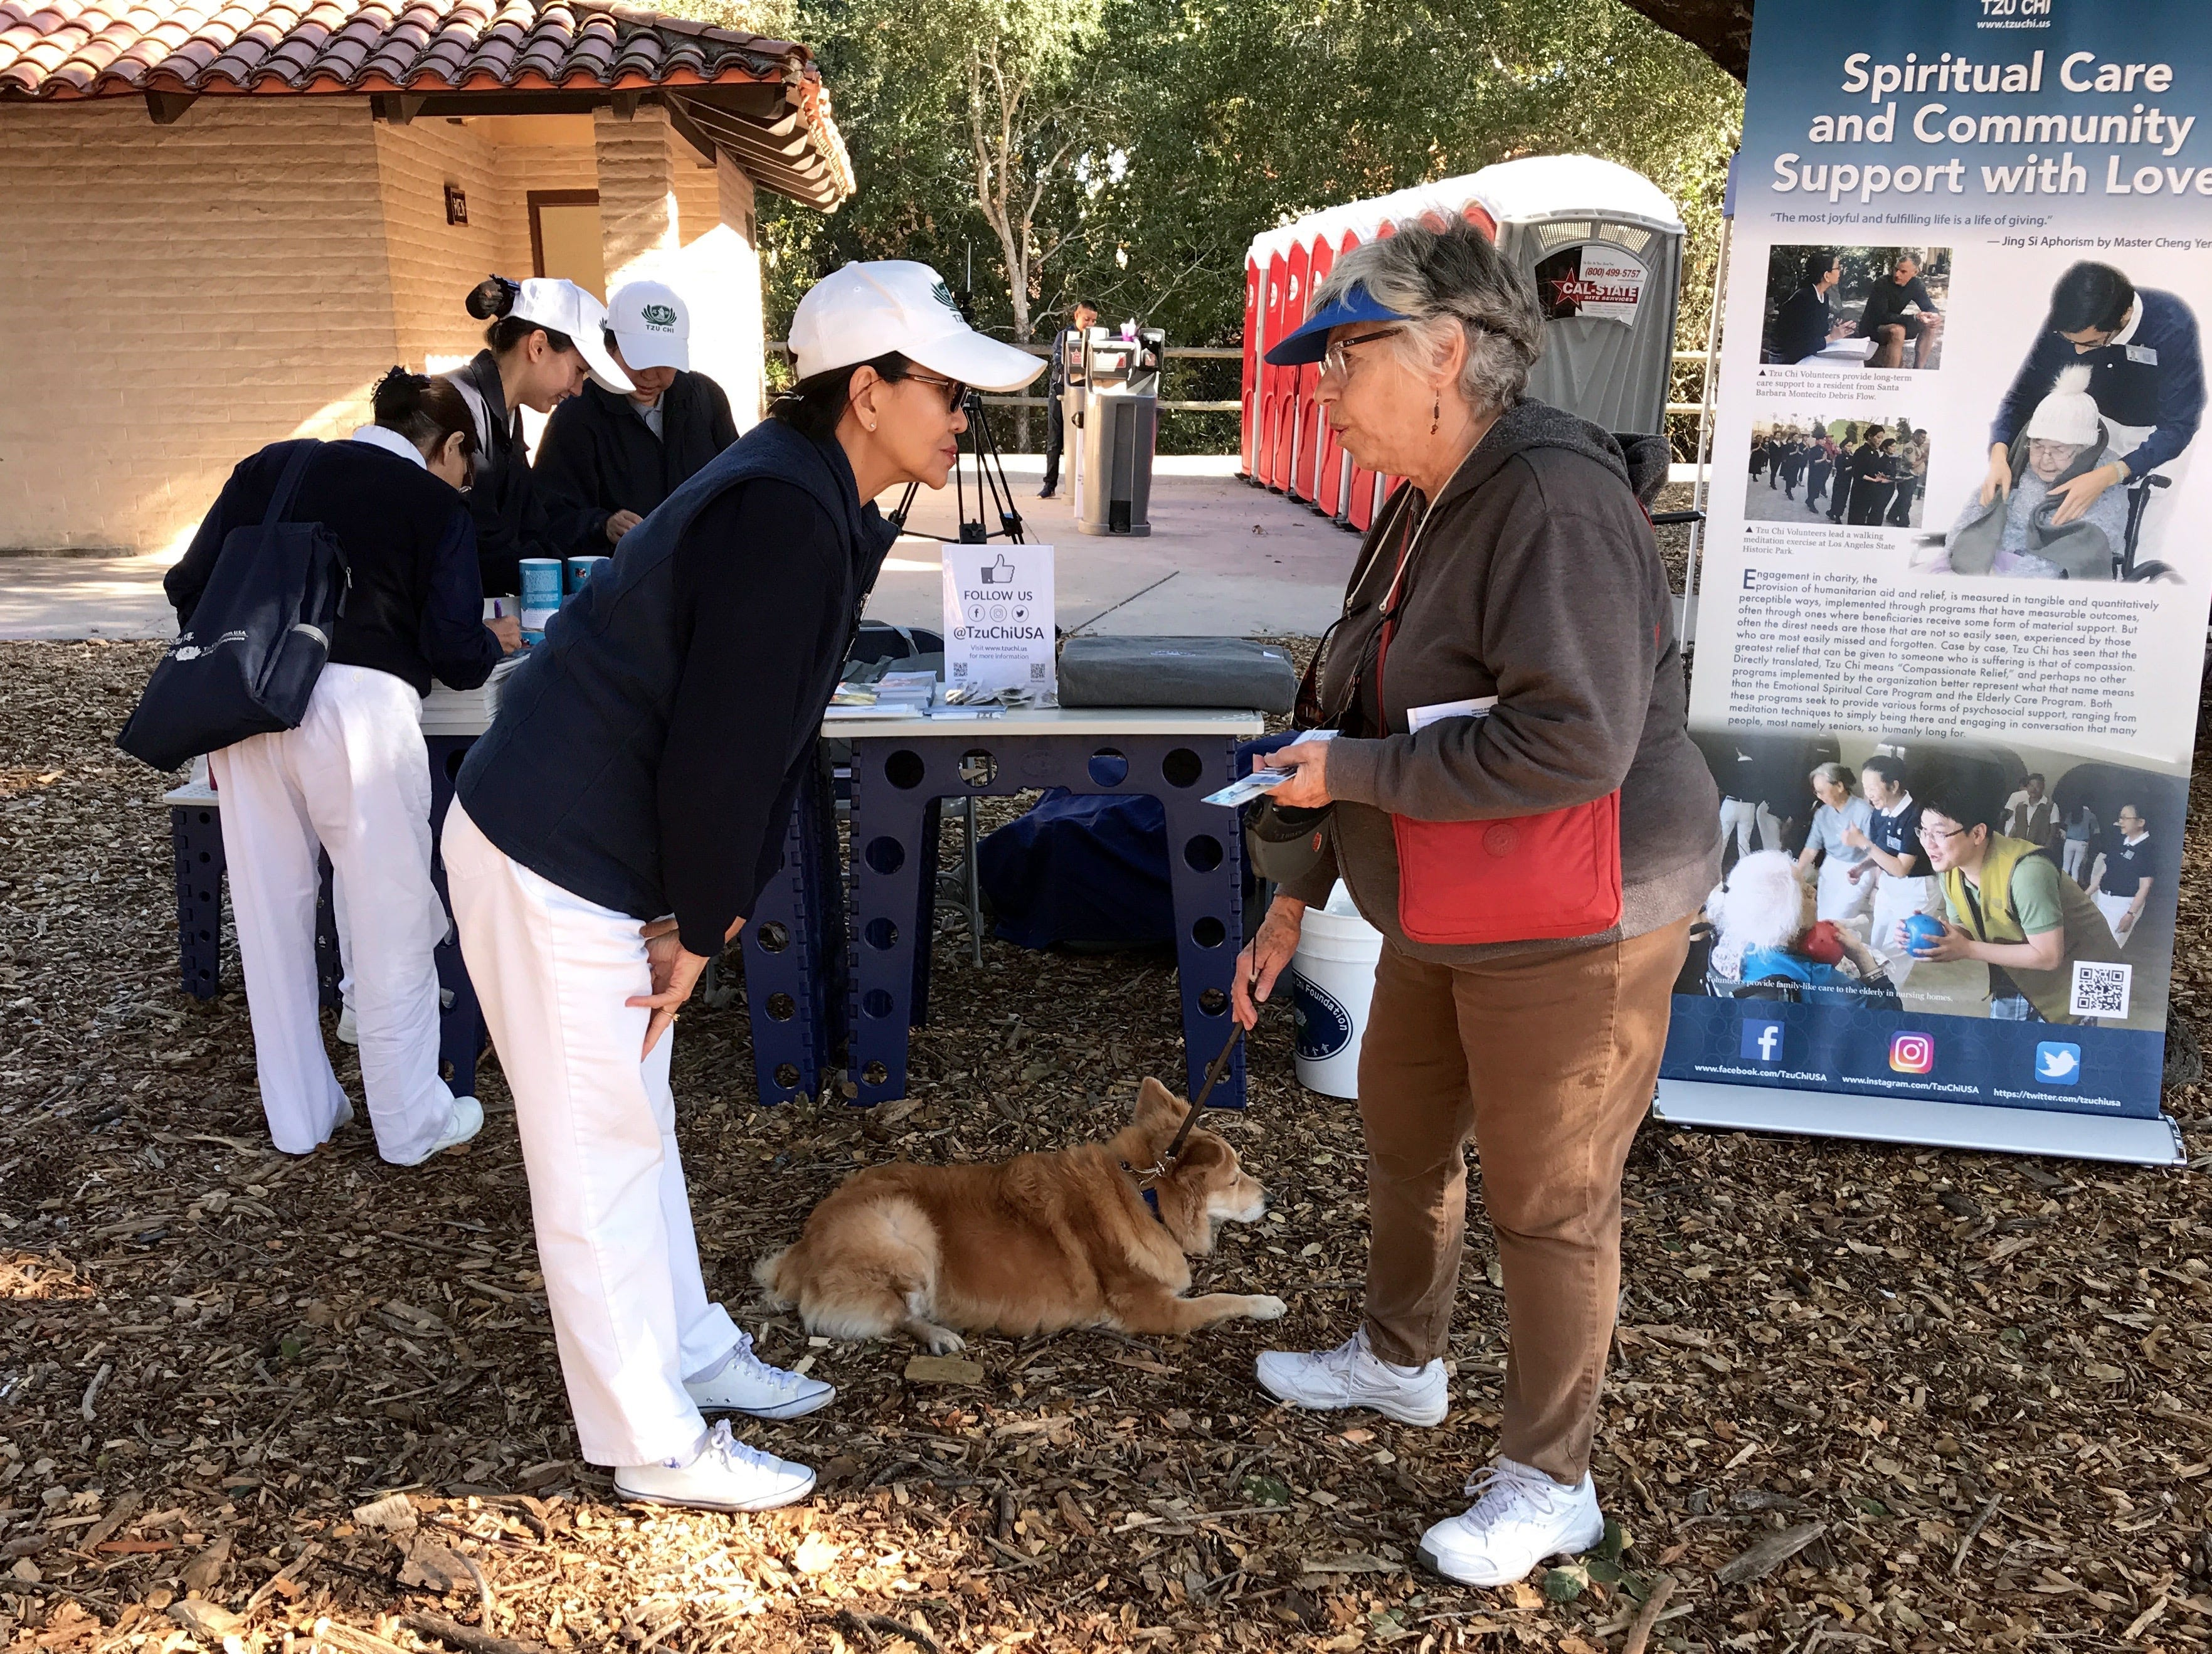 April Goddard, left, a volunteer with the Tzu Chi foundation speaks with Vivian S., of Ojai, a former Thomas Fire evacuee, about her hearing dog, Cami.  The foundation is helping support families affected by California's wildfires.